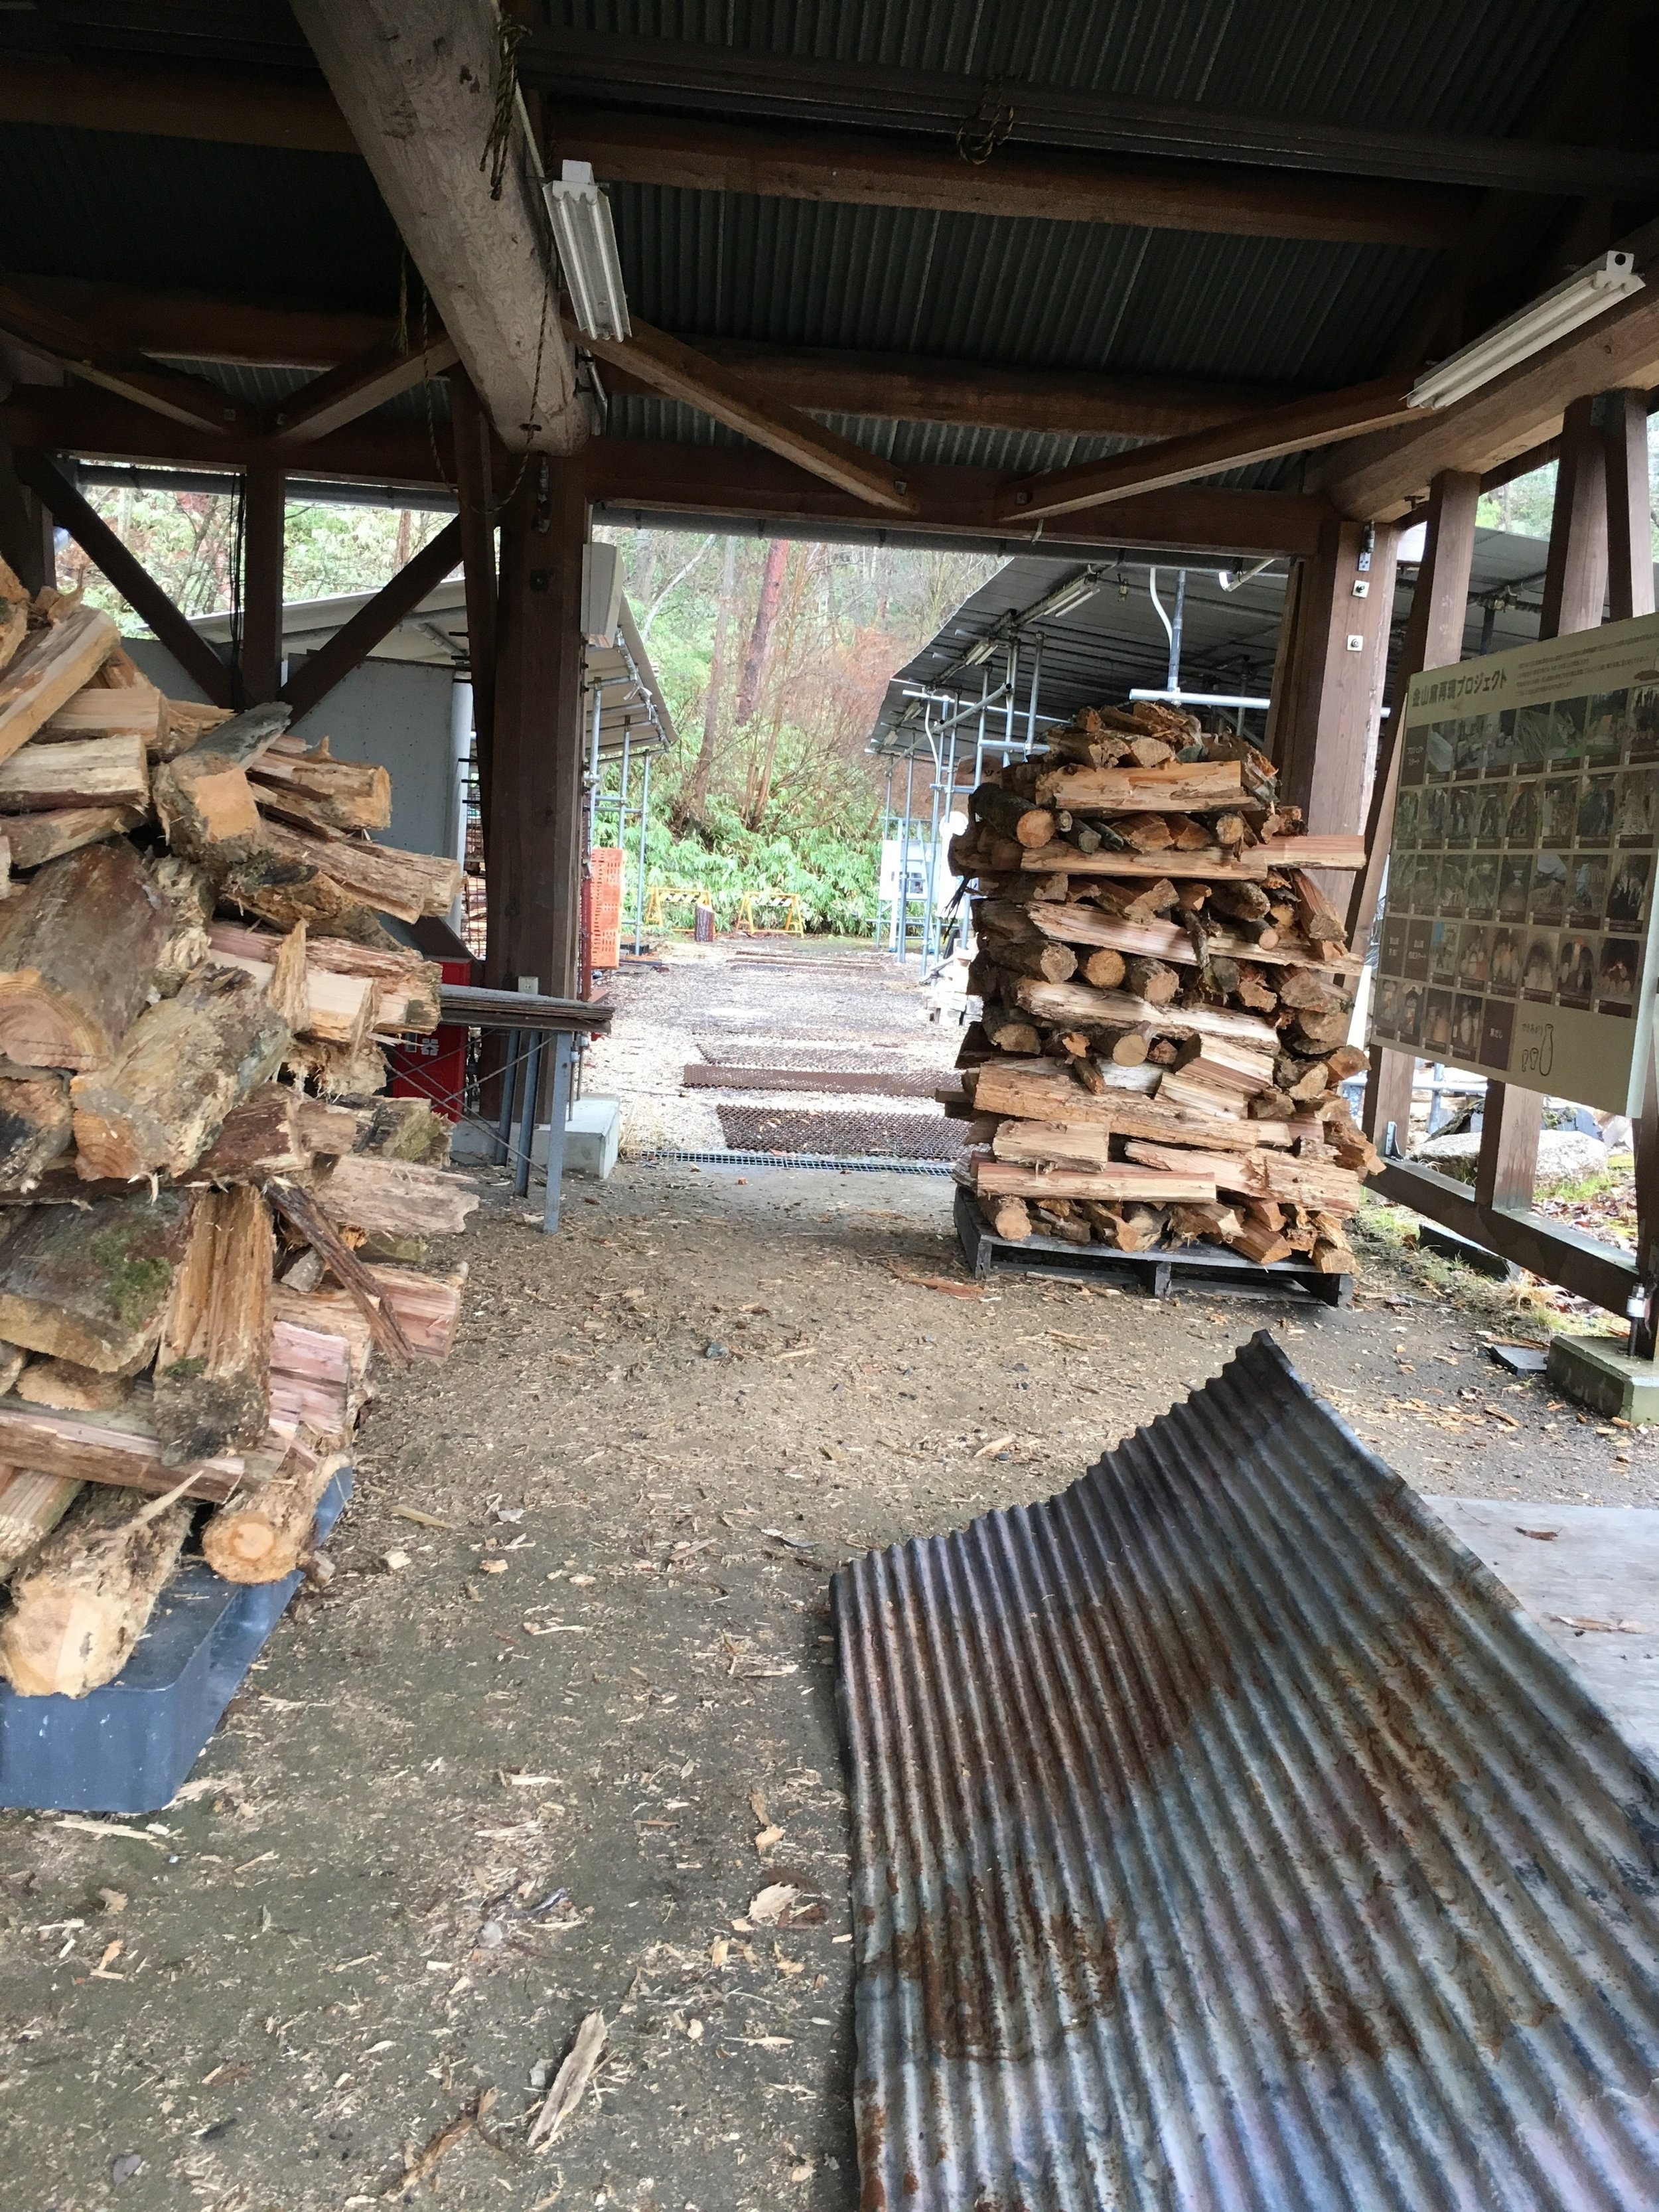 Wood kilns - I got some fresh air in the rain - the scent of cold, damp pine wood fills this space. Someone had fun stacking the wood pile!